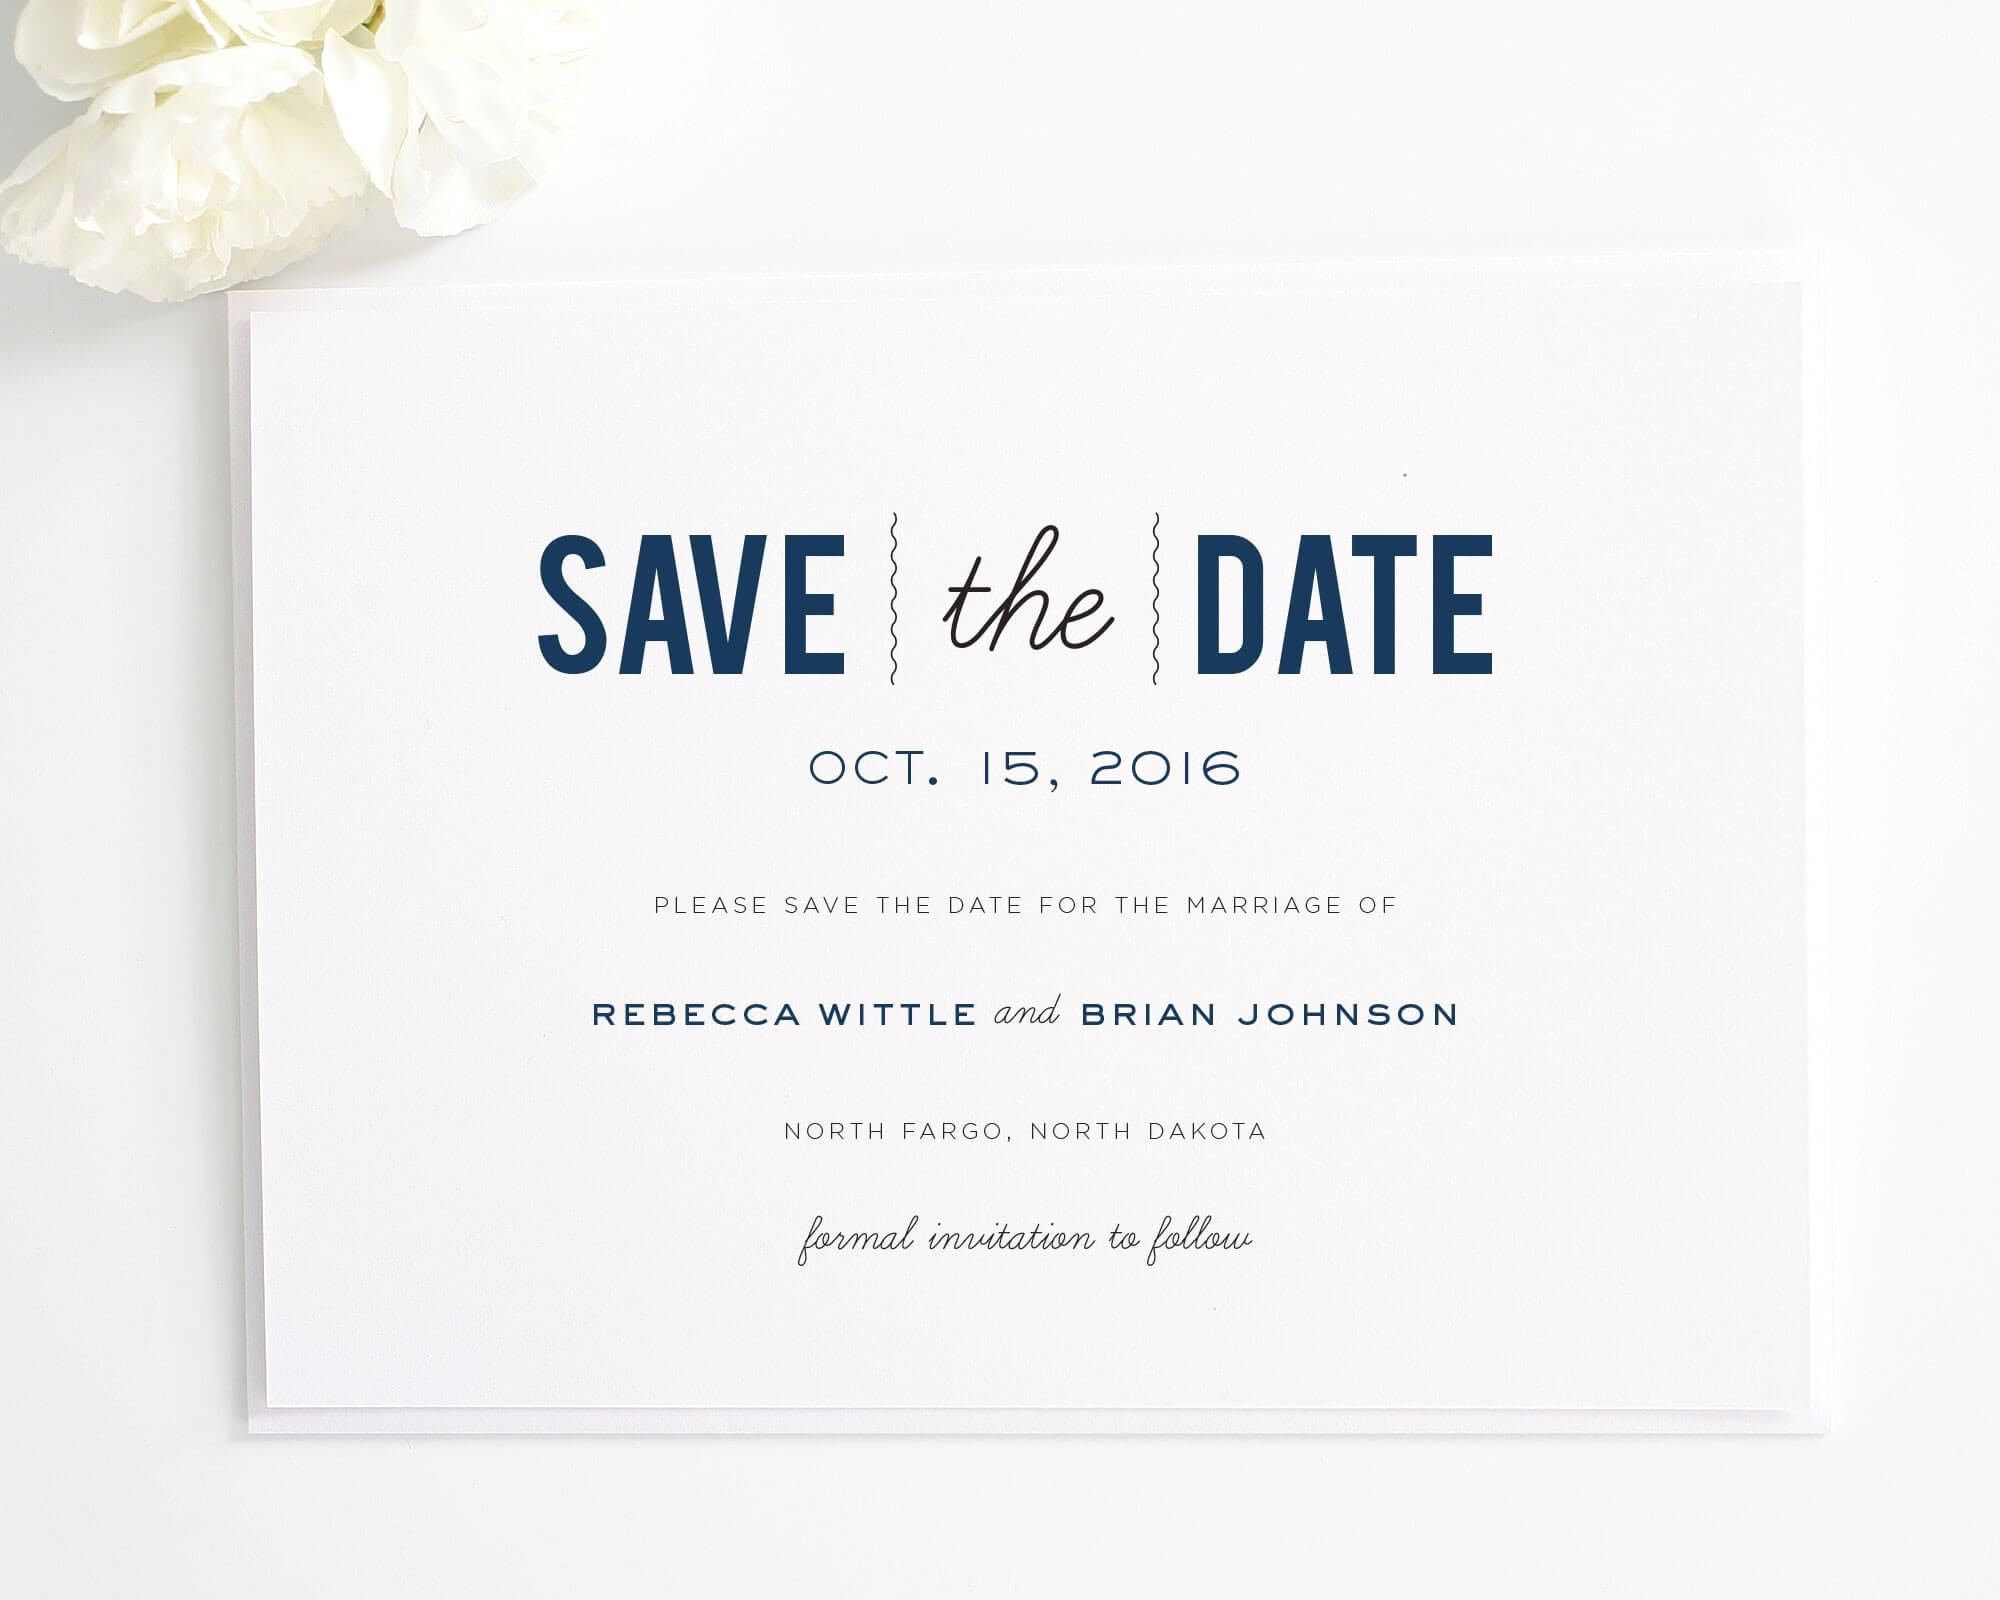 003 Save The Date Template Word Precious Sample Retire Party pertaining to Save The Date Templates Word